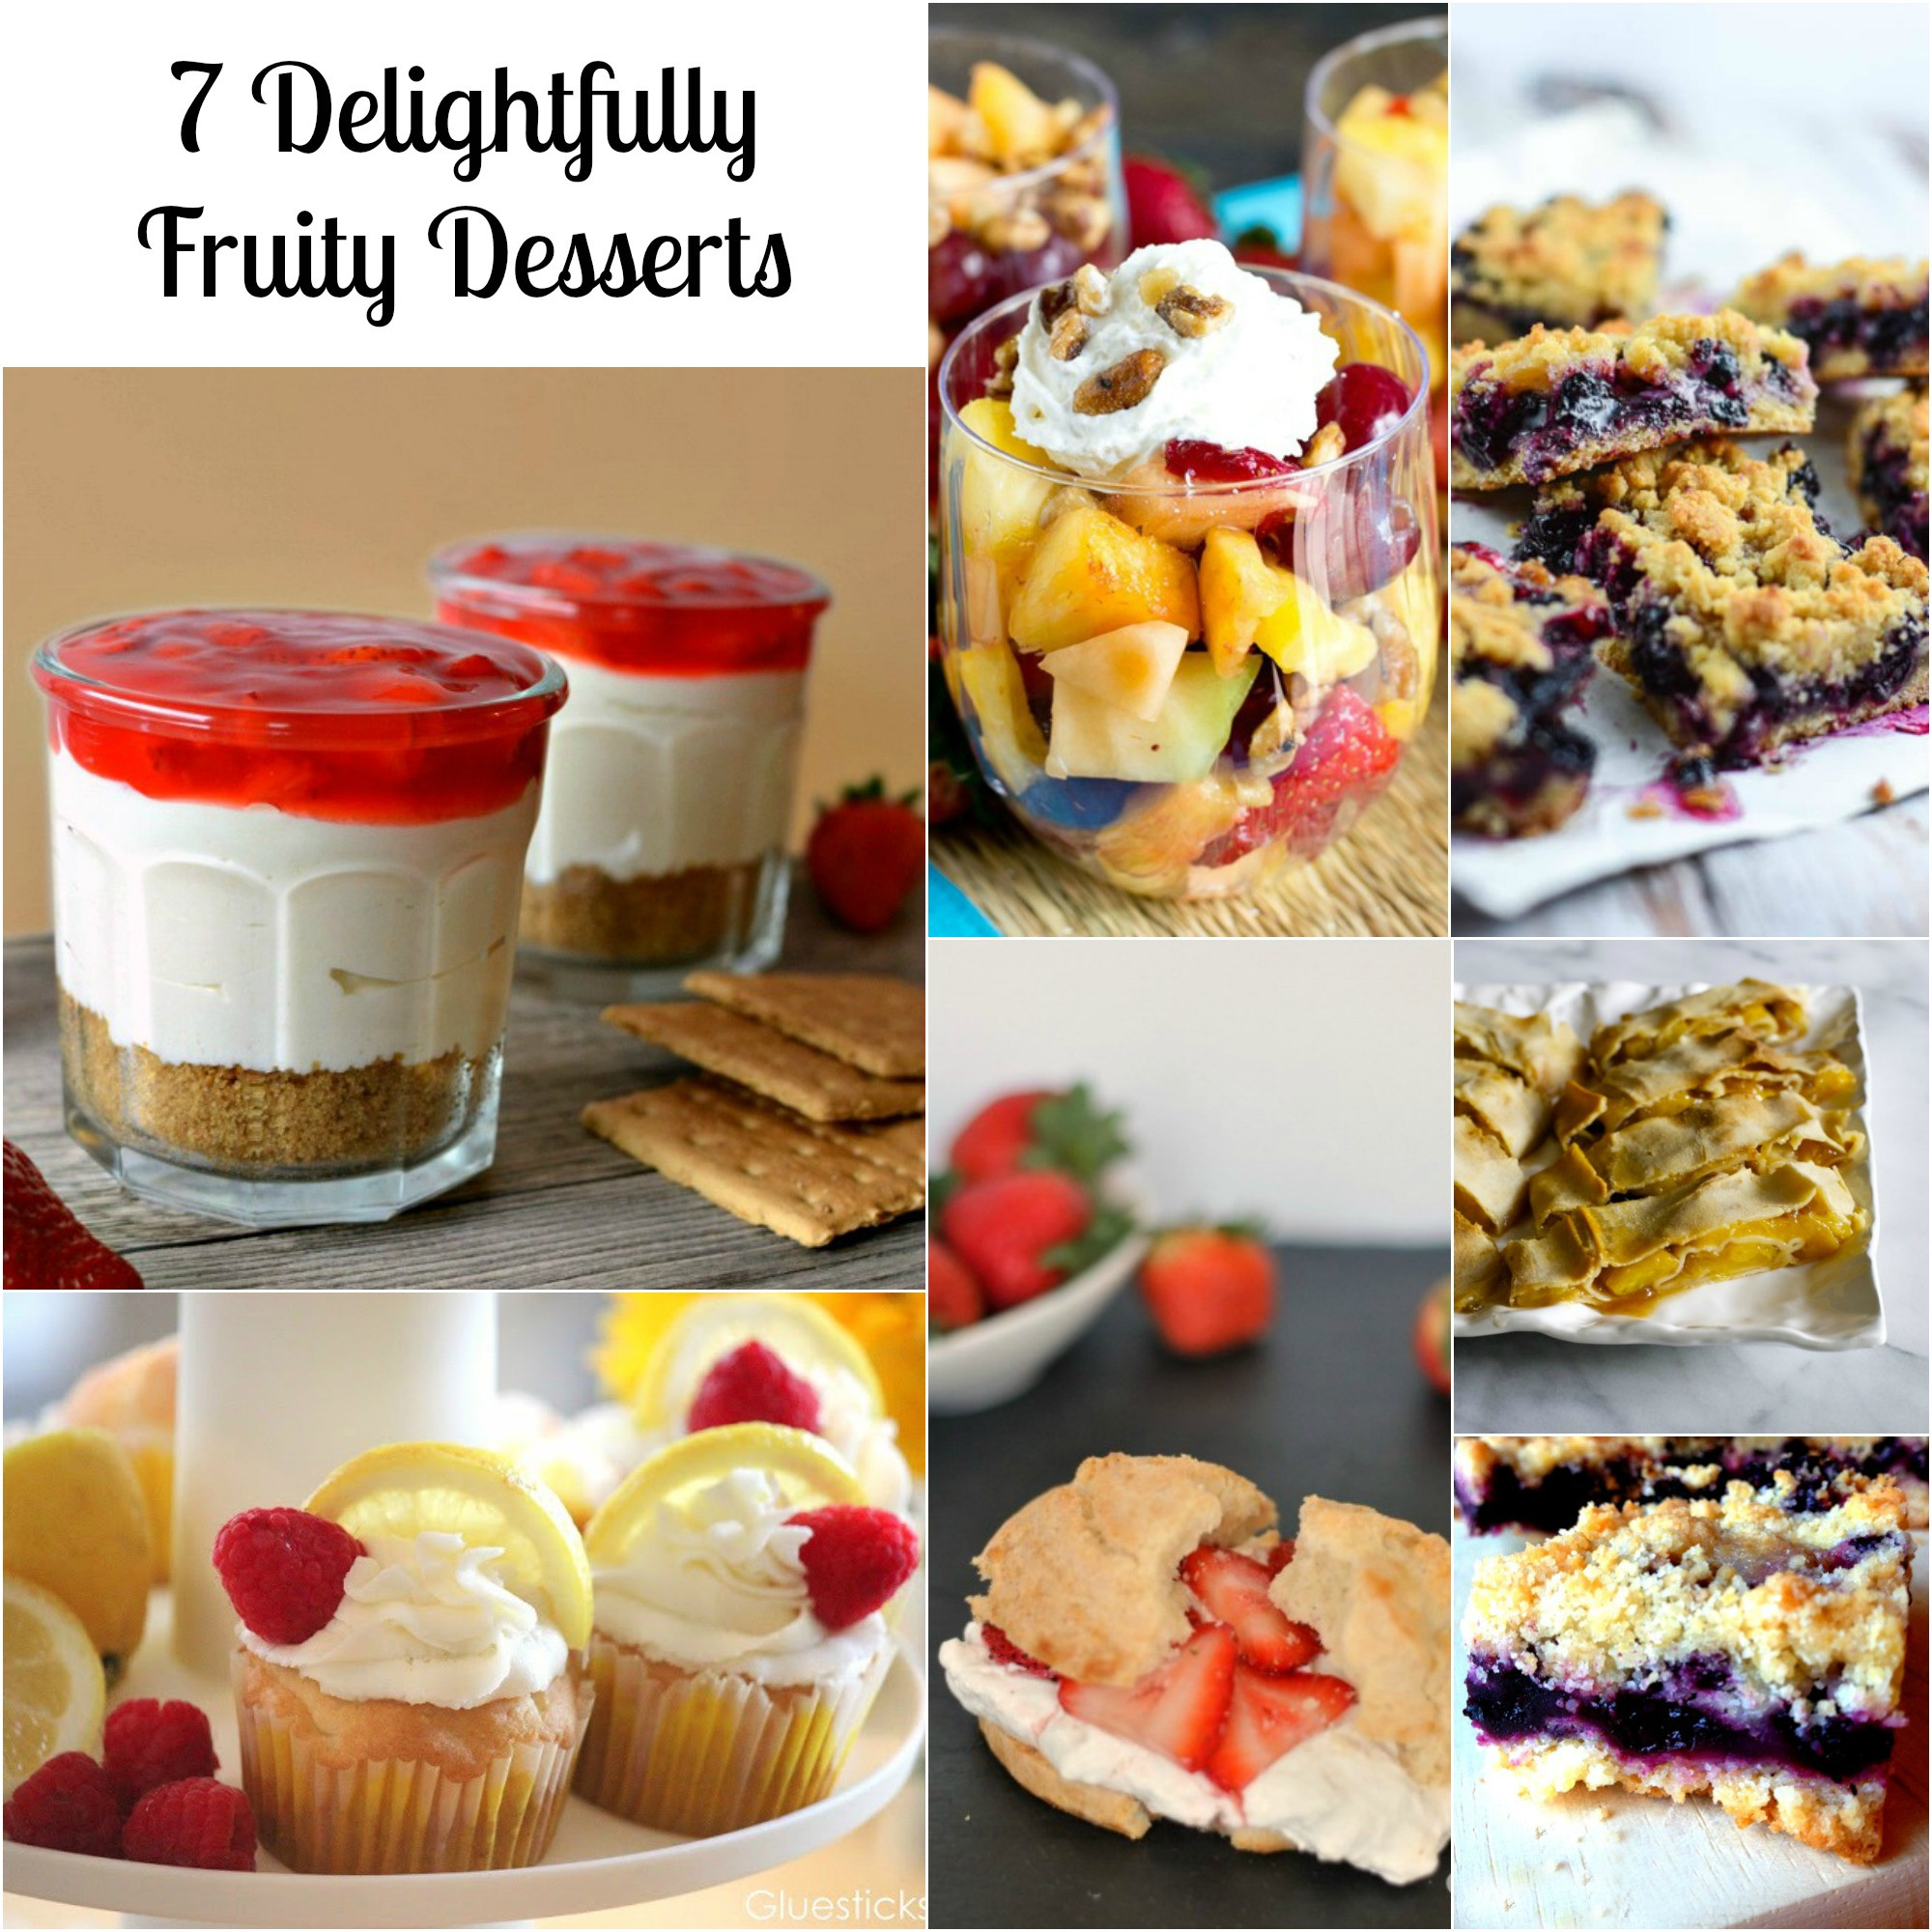 Summer Dessert Ideas  7 Summer Dessert Recipes You Have to Try SoFabFood